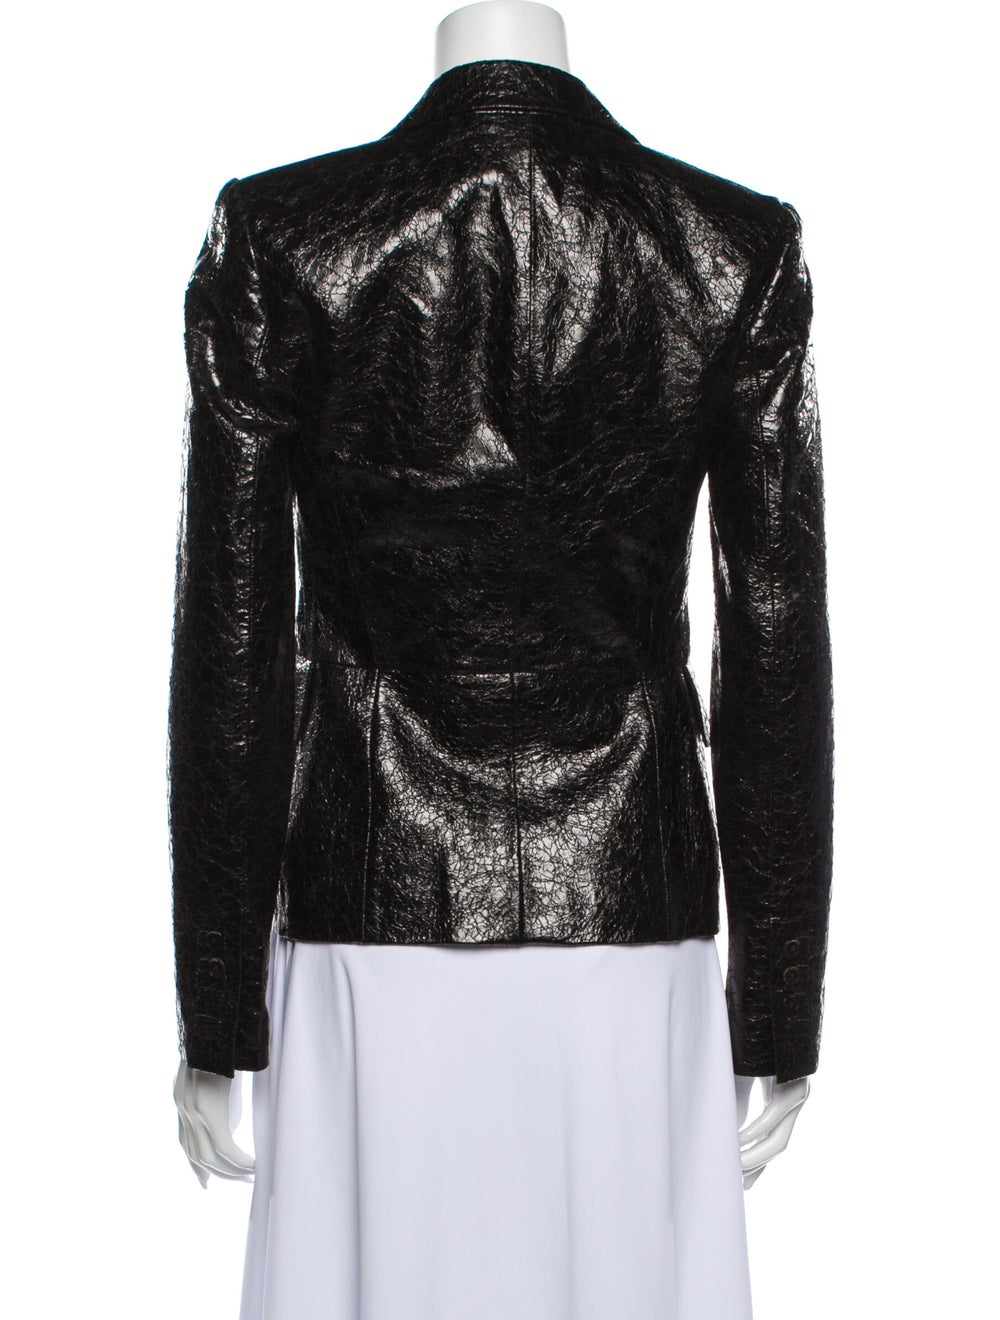 Gucci Leather Blazer Black - image 3